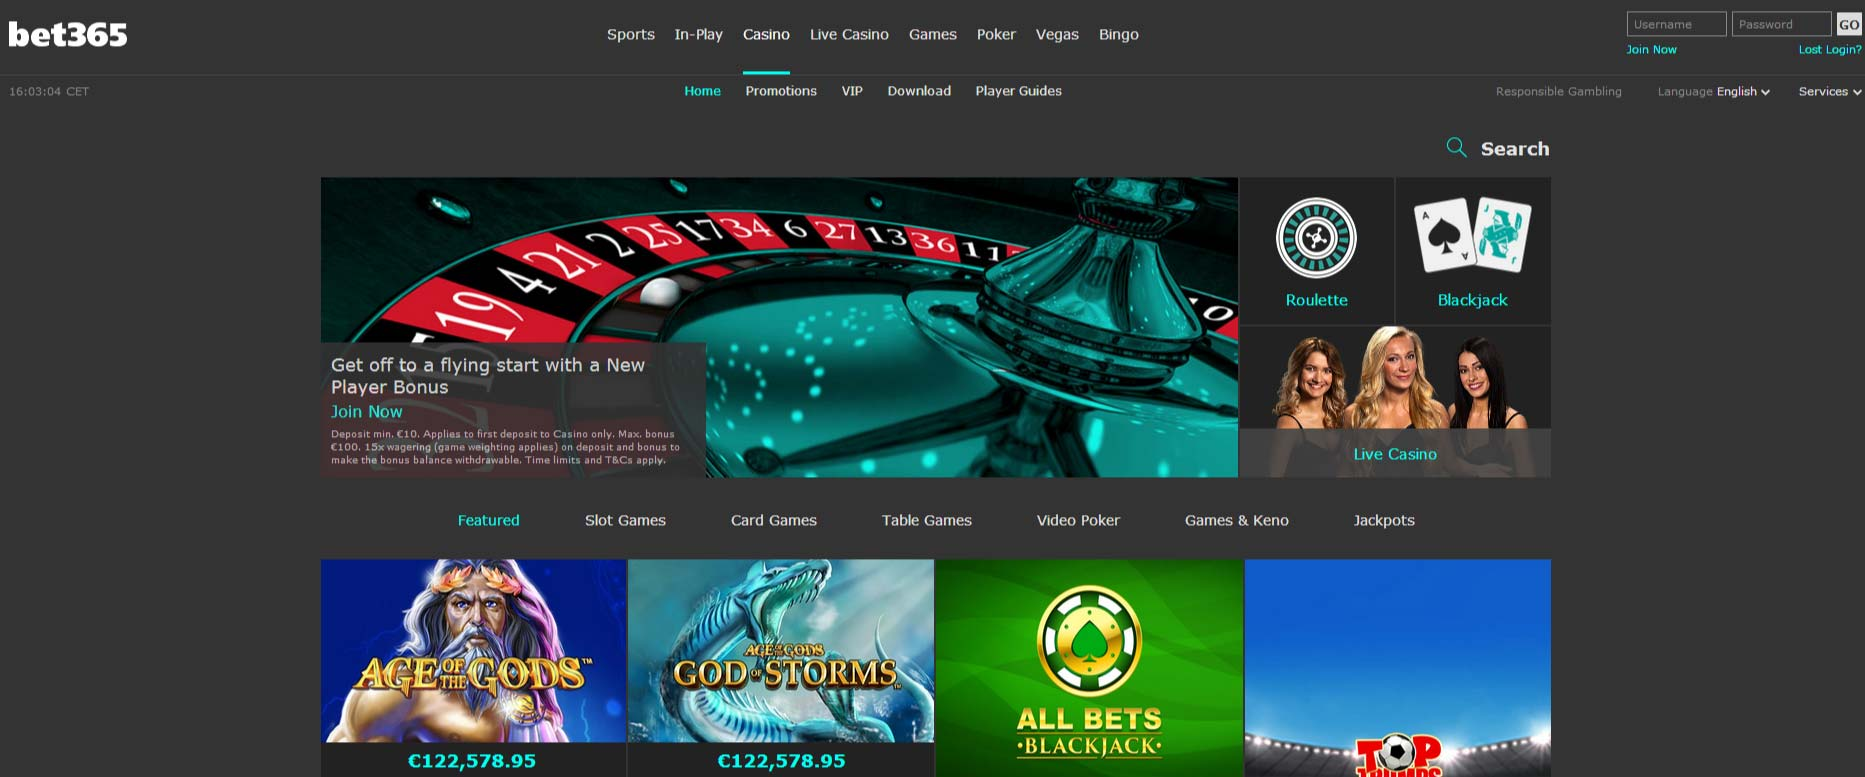 casino bet365 router